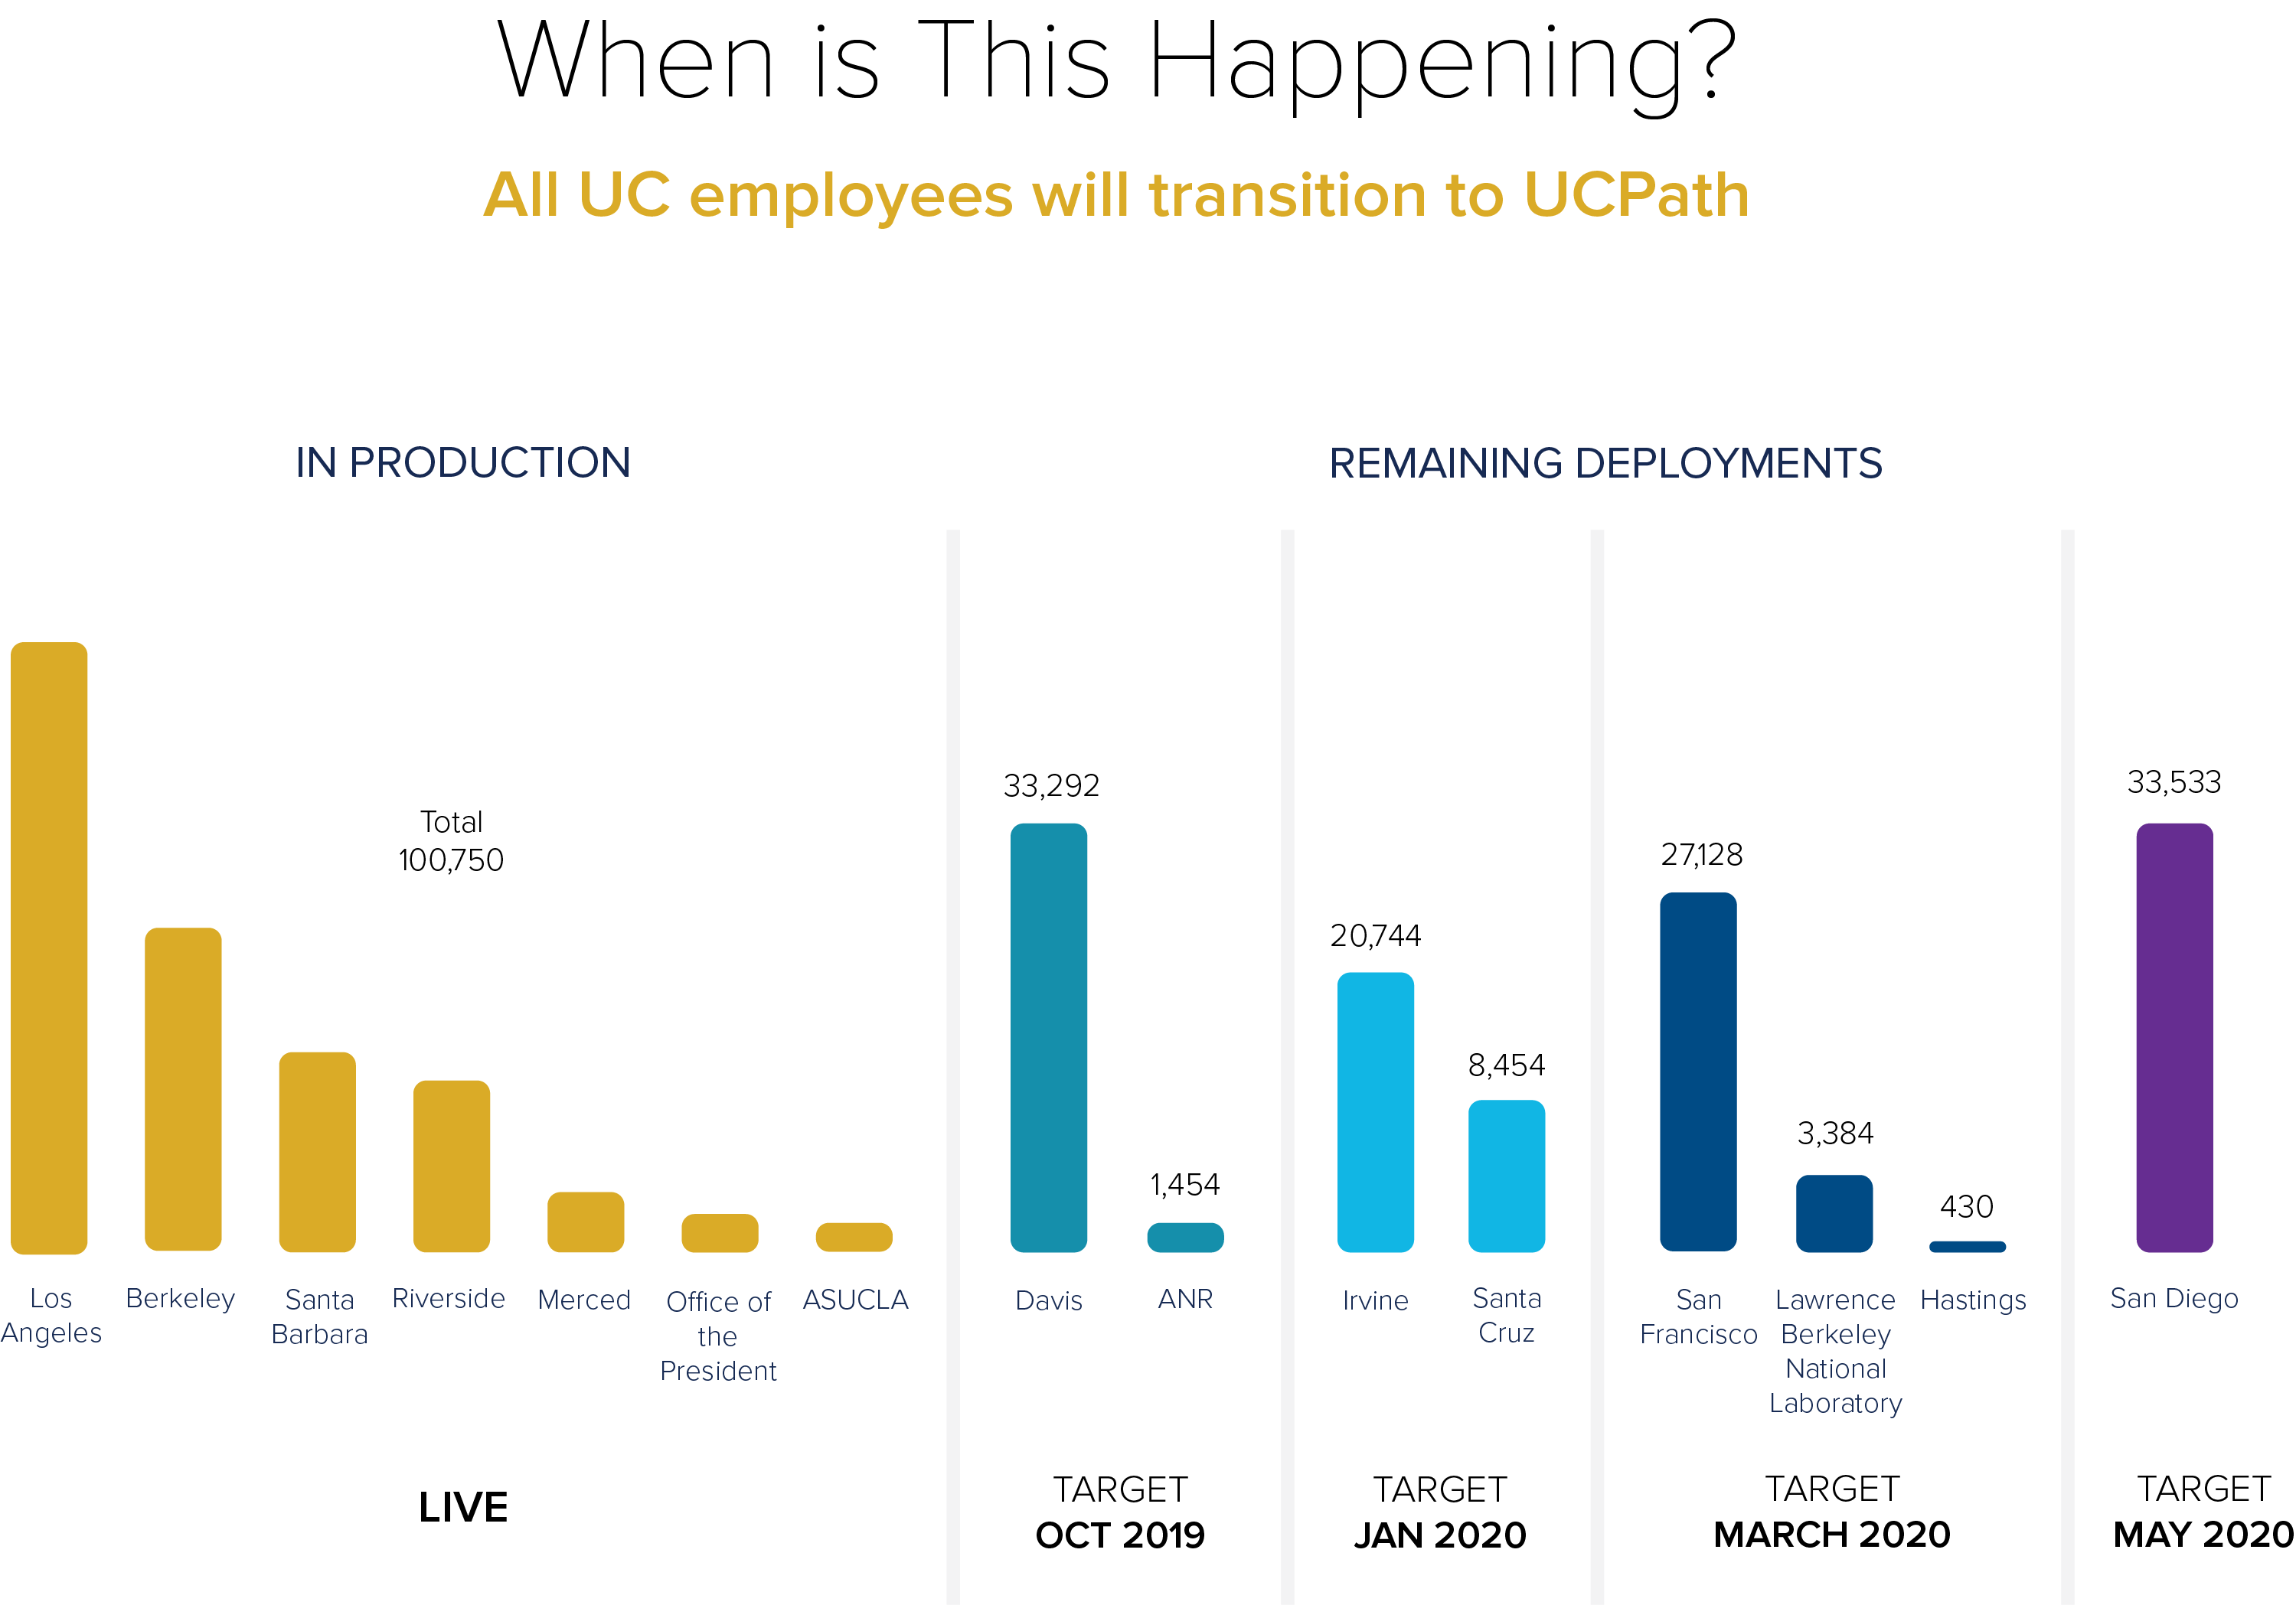 UCPath deployment timeline shows UC Davis with 33,292 employees to deploy October 2019